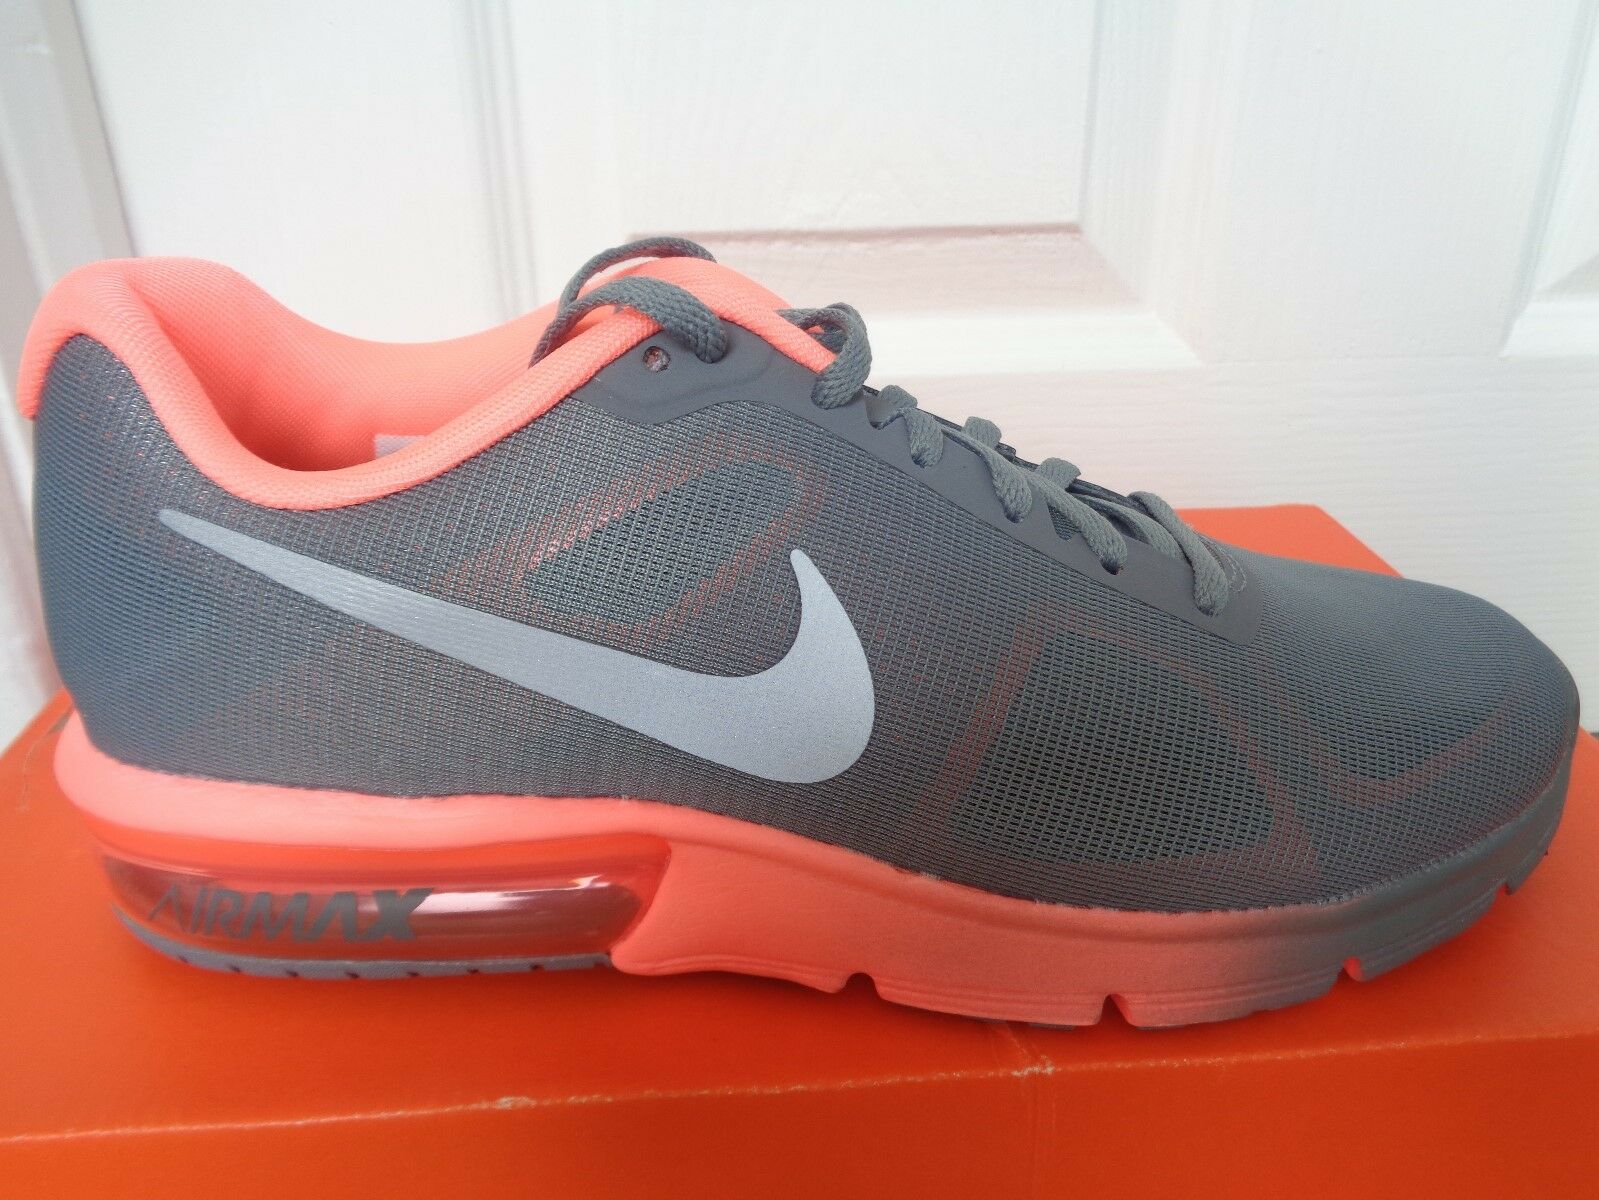 Nike Air Max Sequent trainers  chaussures  719916 011 uk 4.5 eu 38 us 7 NEW IN BOX